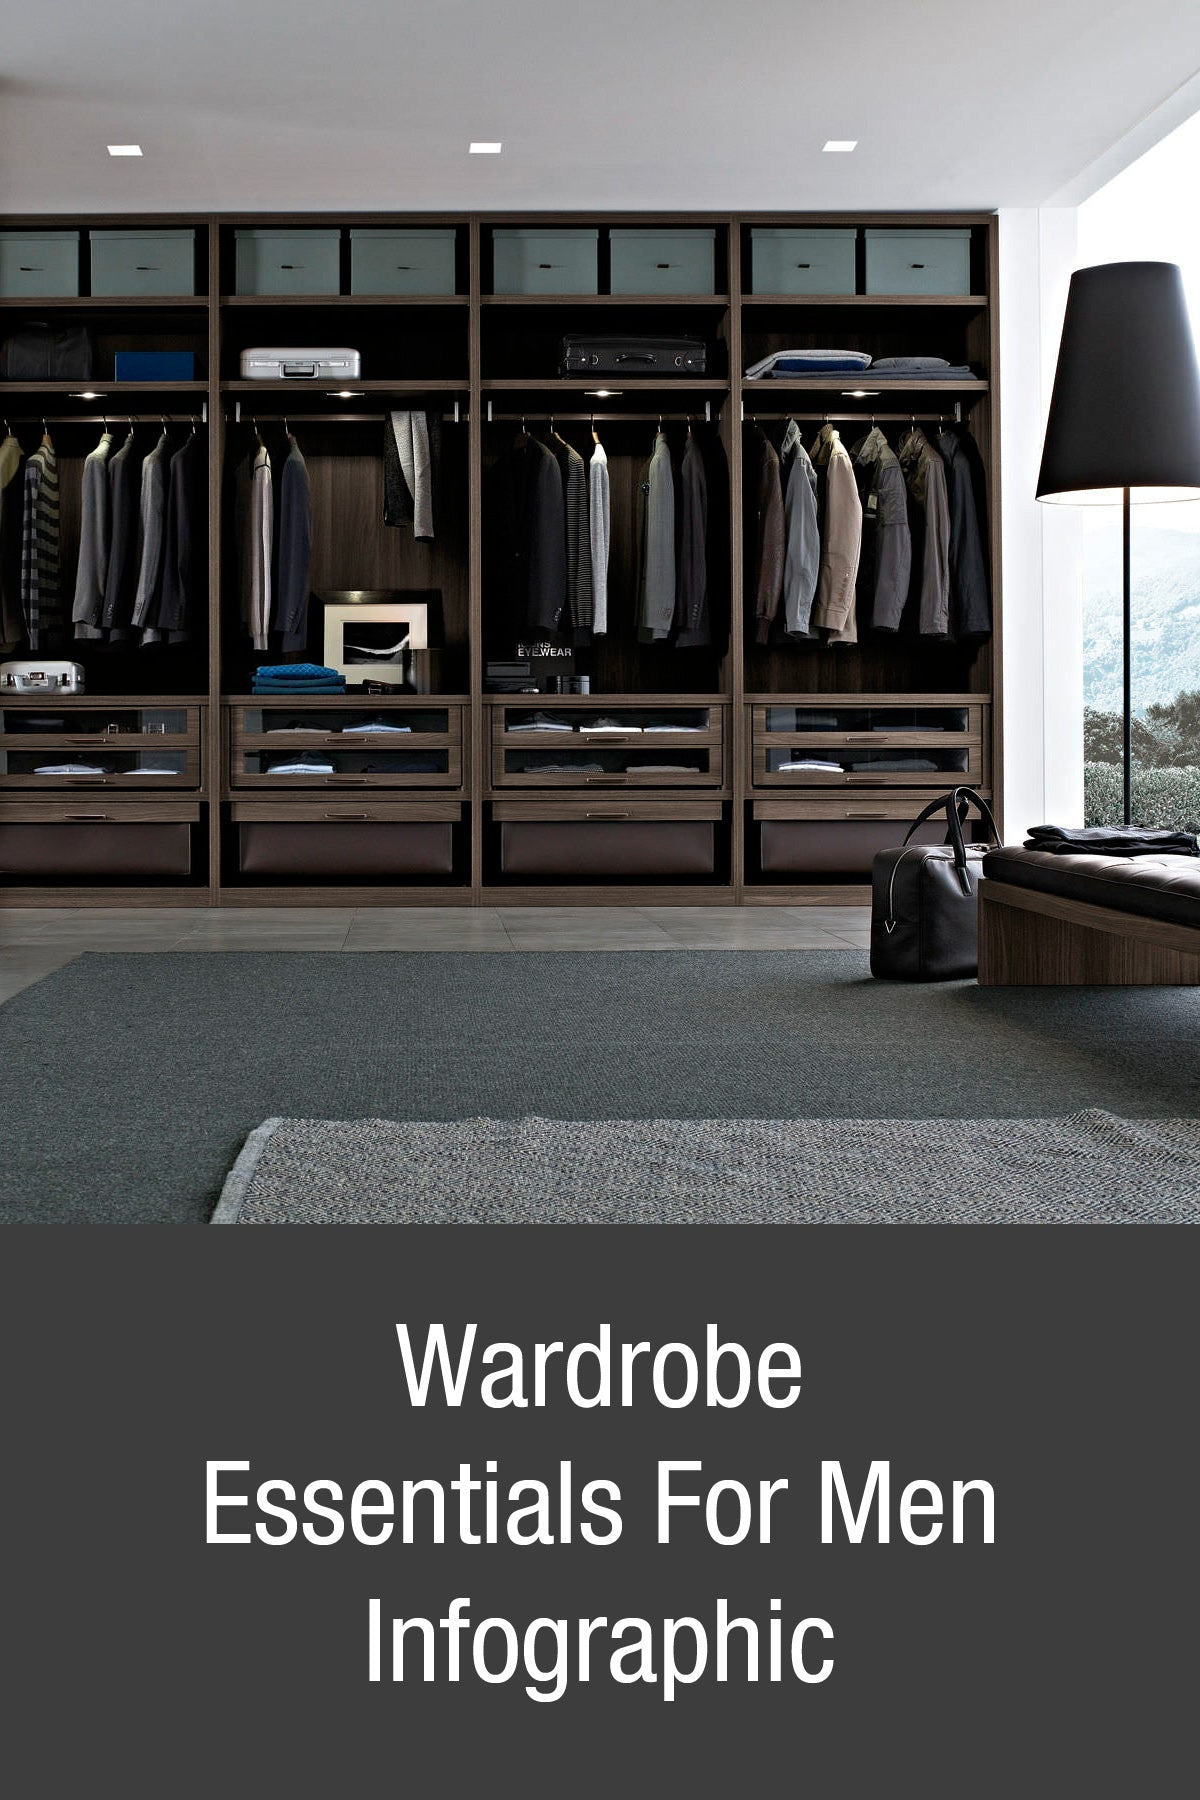 Wardrobe essentials for men infographic